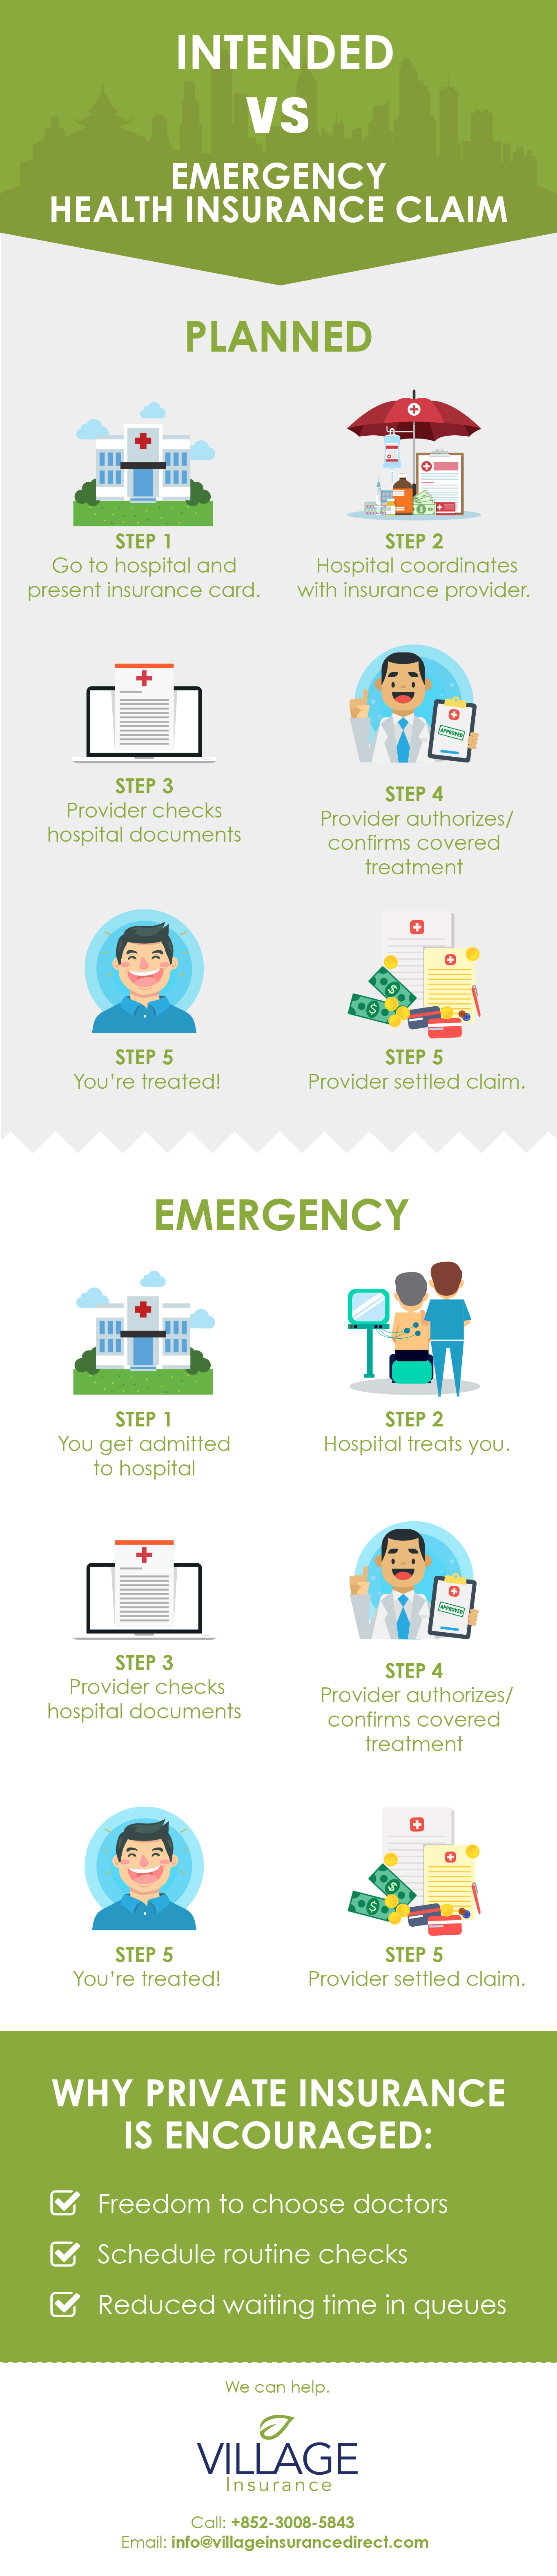 infographic intended vs emergency insurance claim in hong kong - village insurance